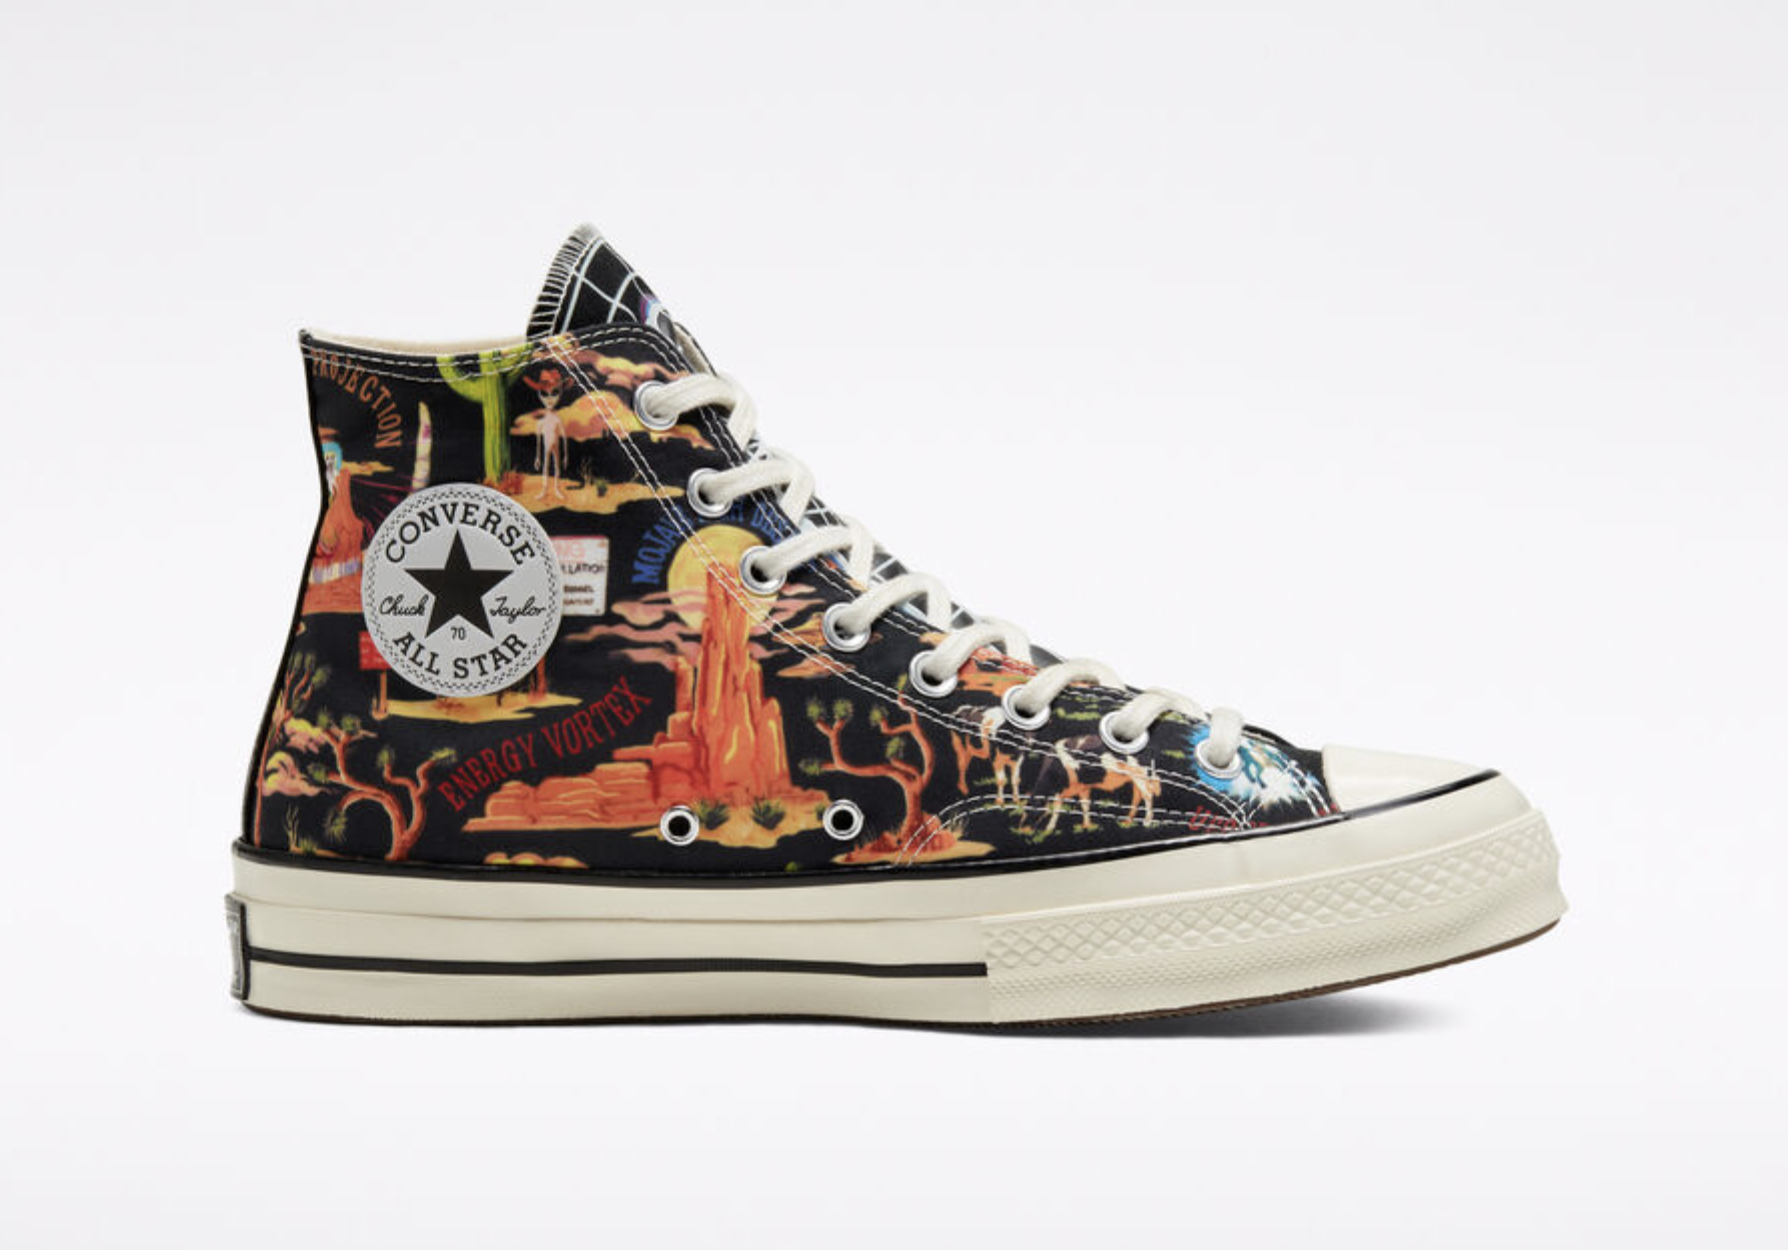 Converse Chuck 70 Him 'Twisted Resort'